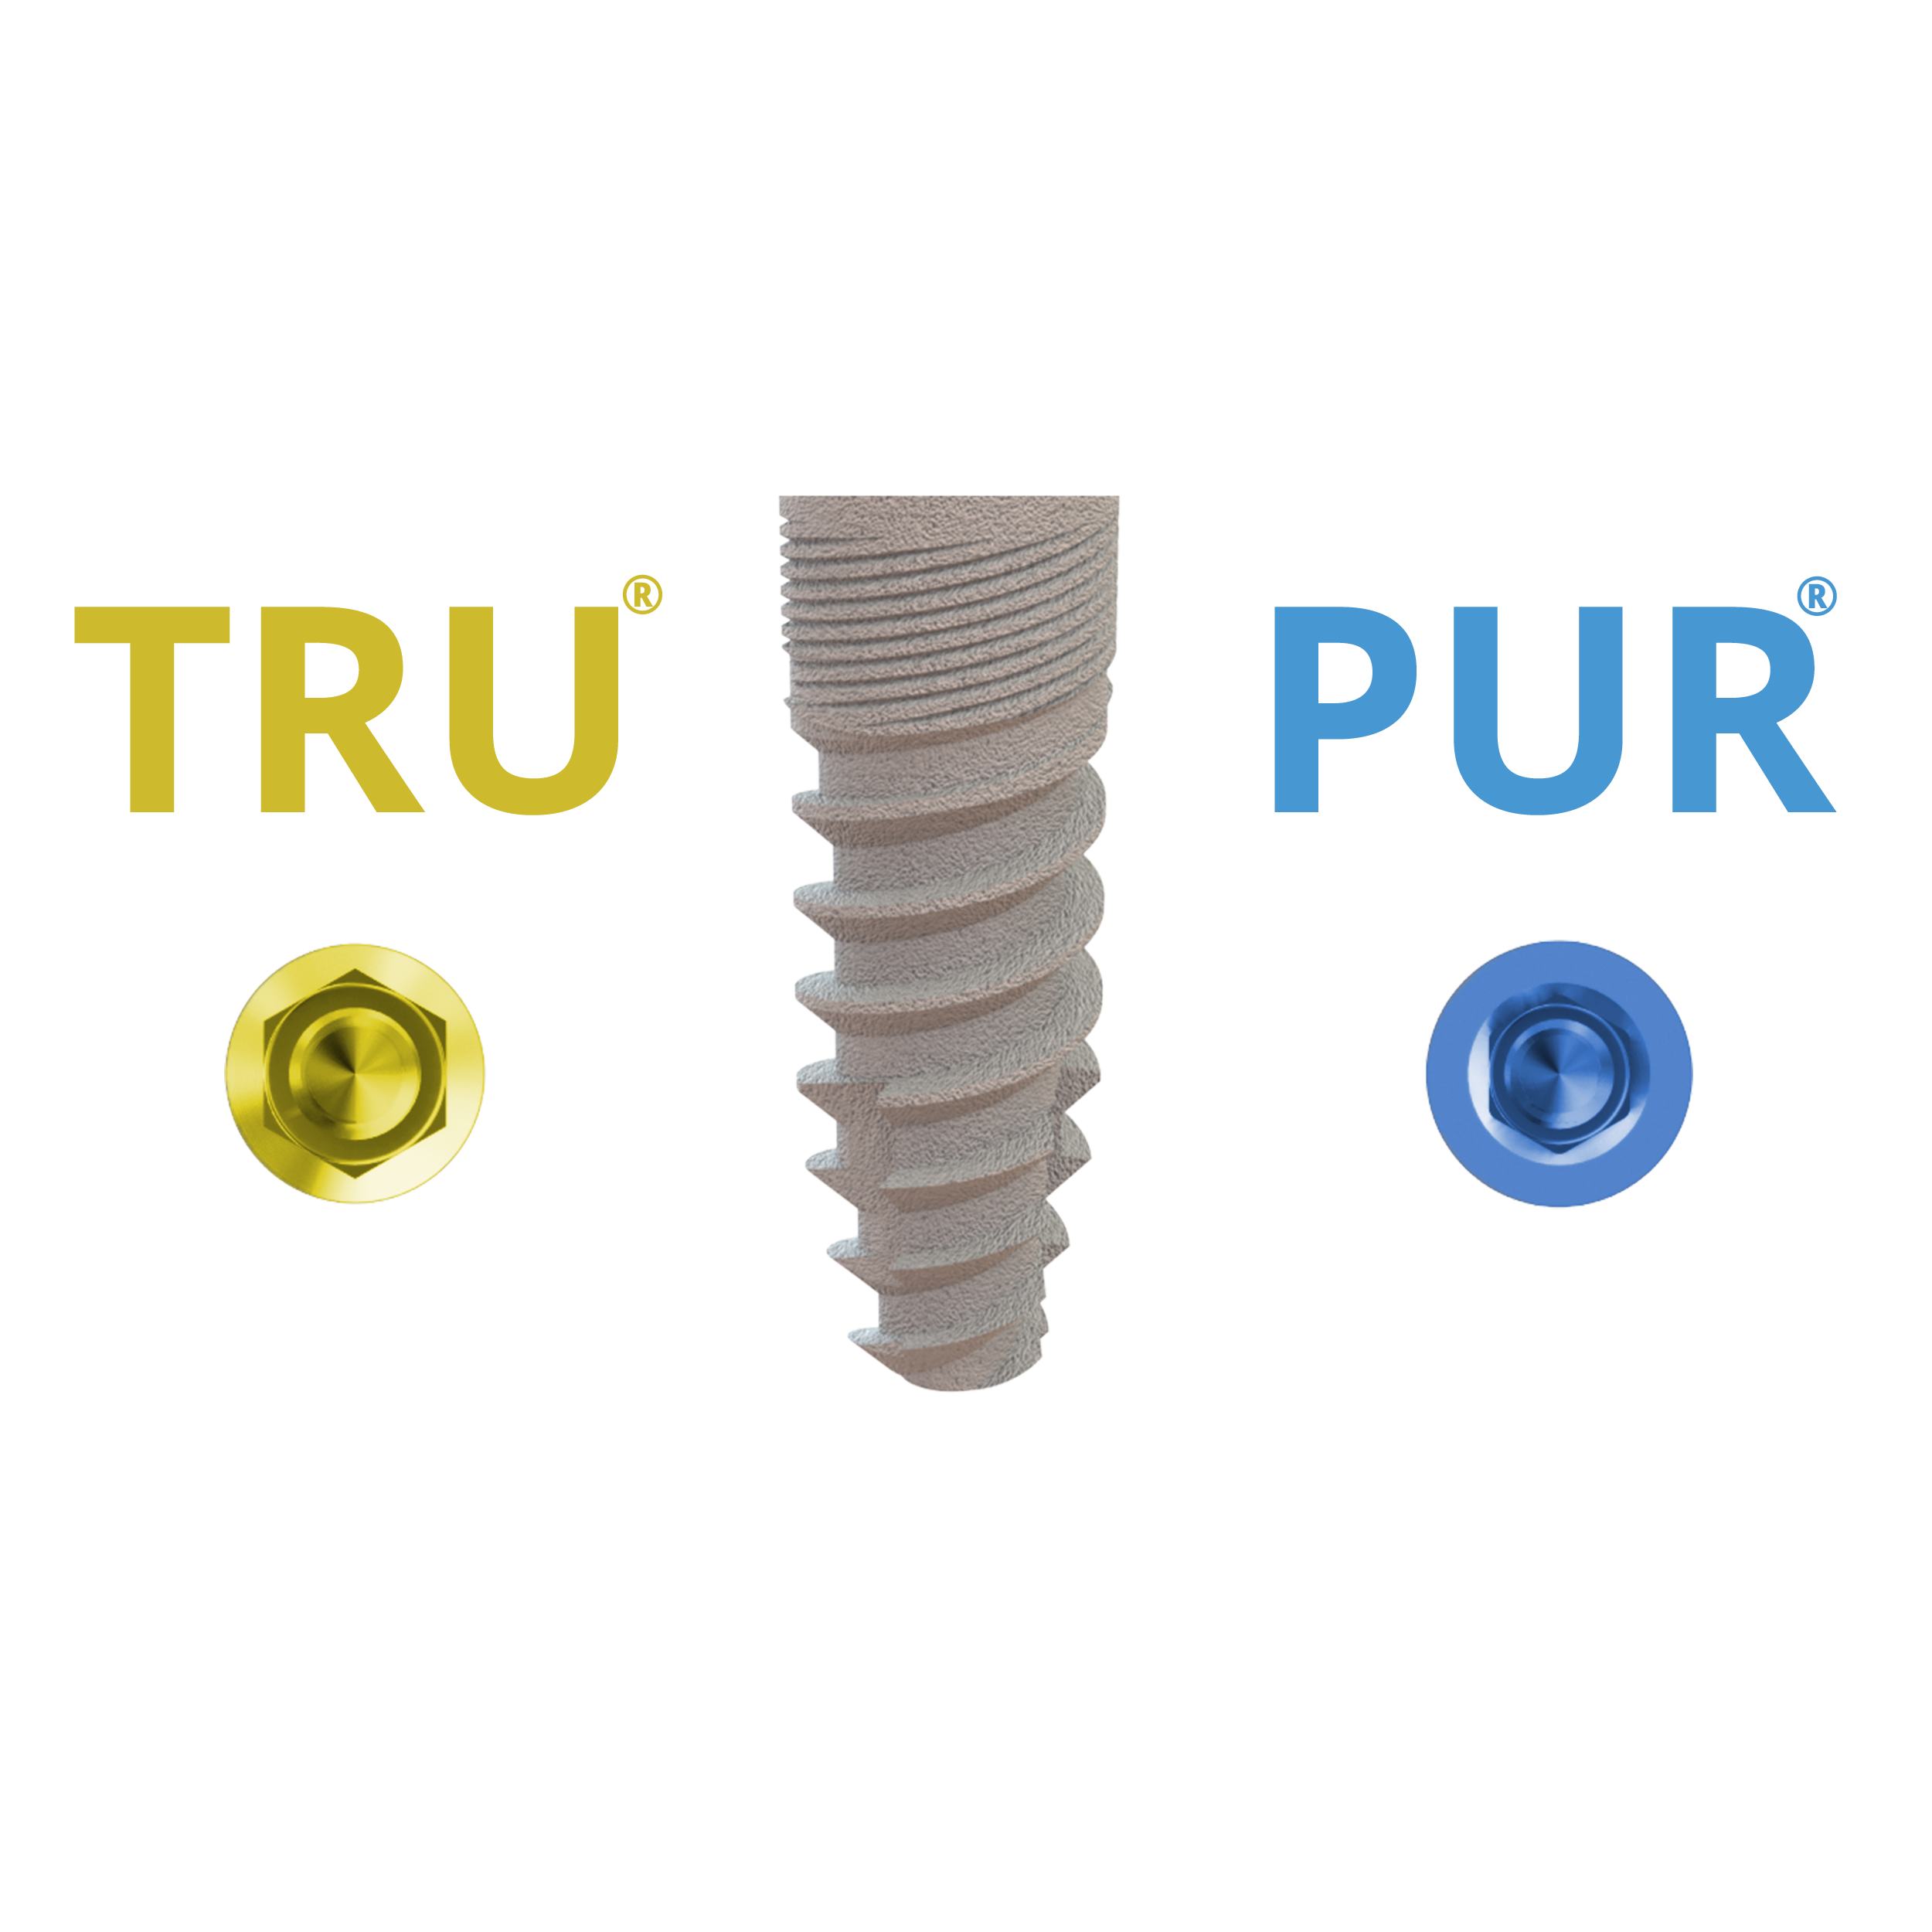 TRU® & PUR® Dental Implants: When Value & Performance Matter Most